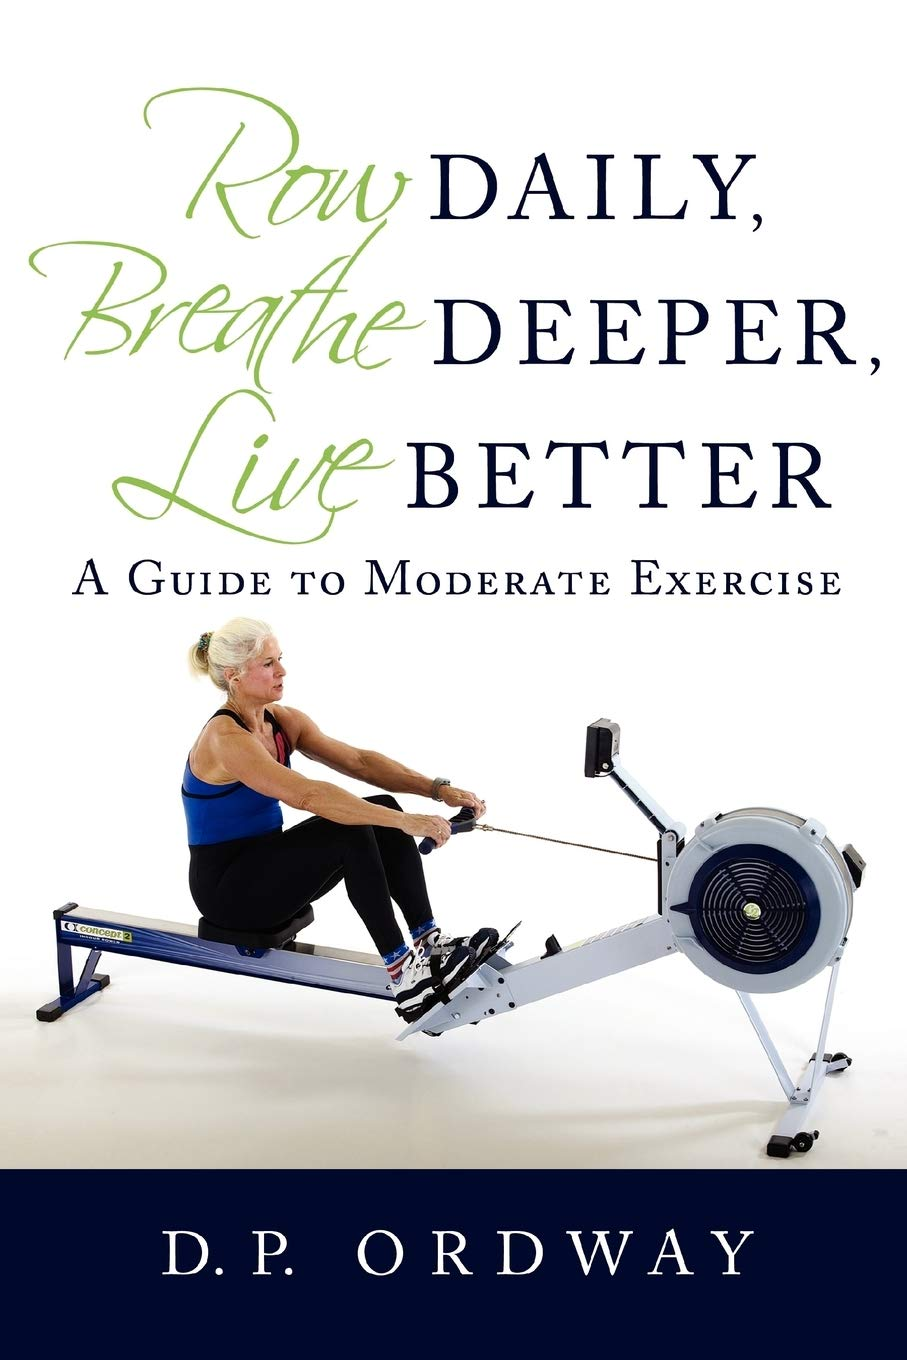 Row Daily, Breathe Deeper, Live Better is a book about slow rowing for a better life for life